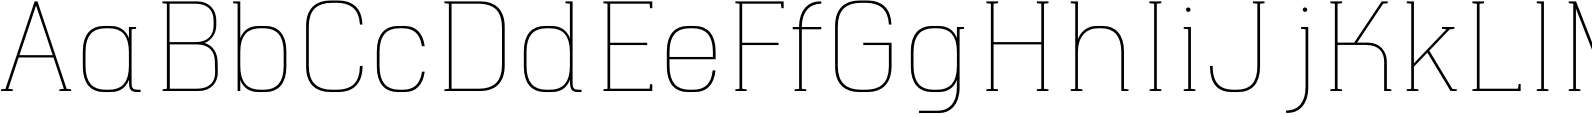 Hapna Slab Serif Light